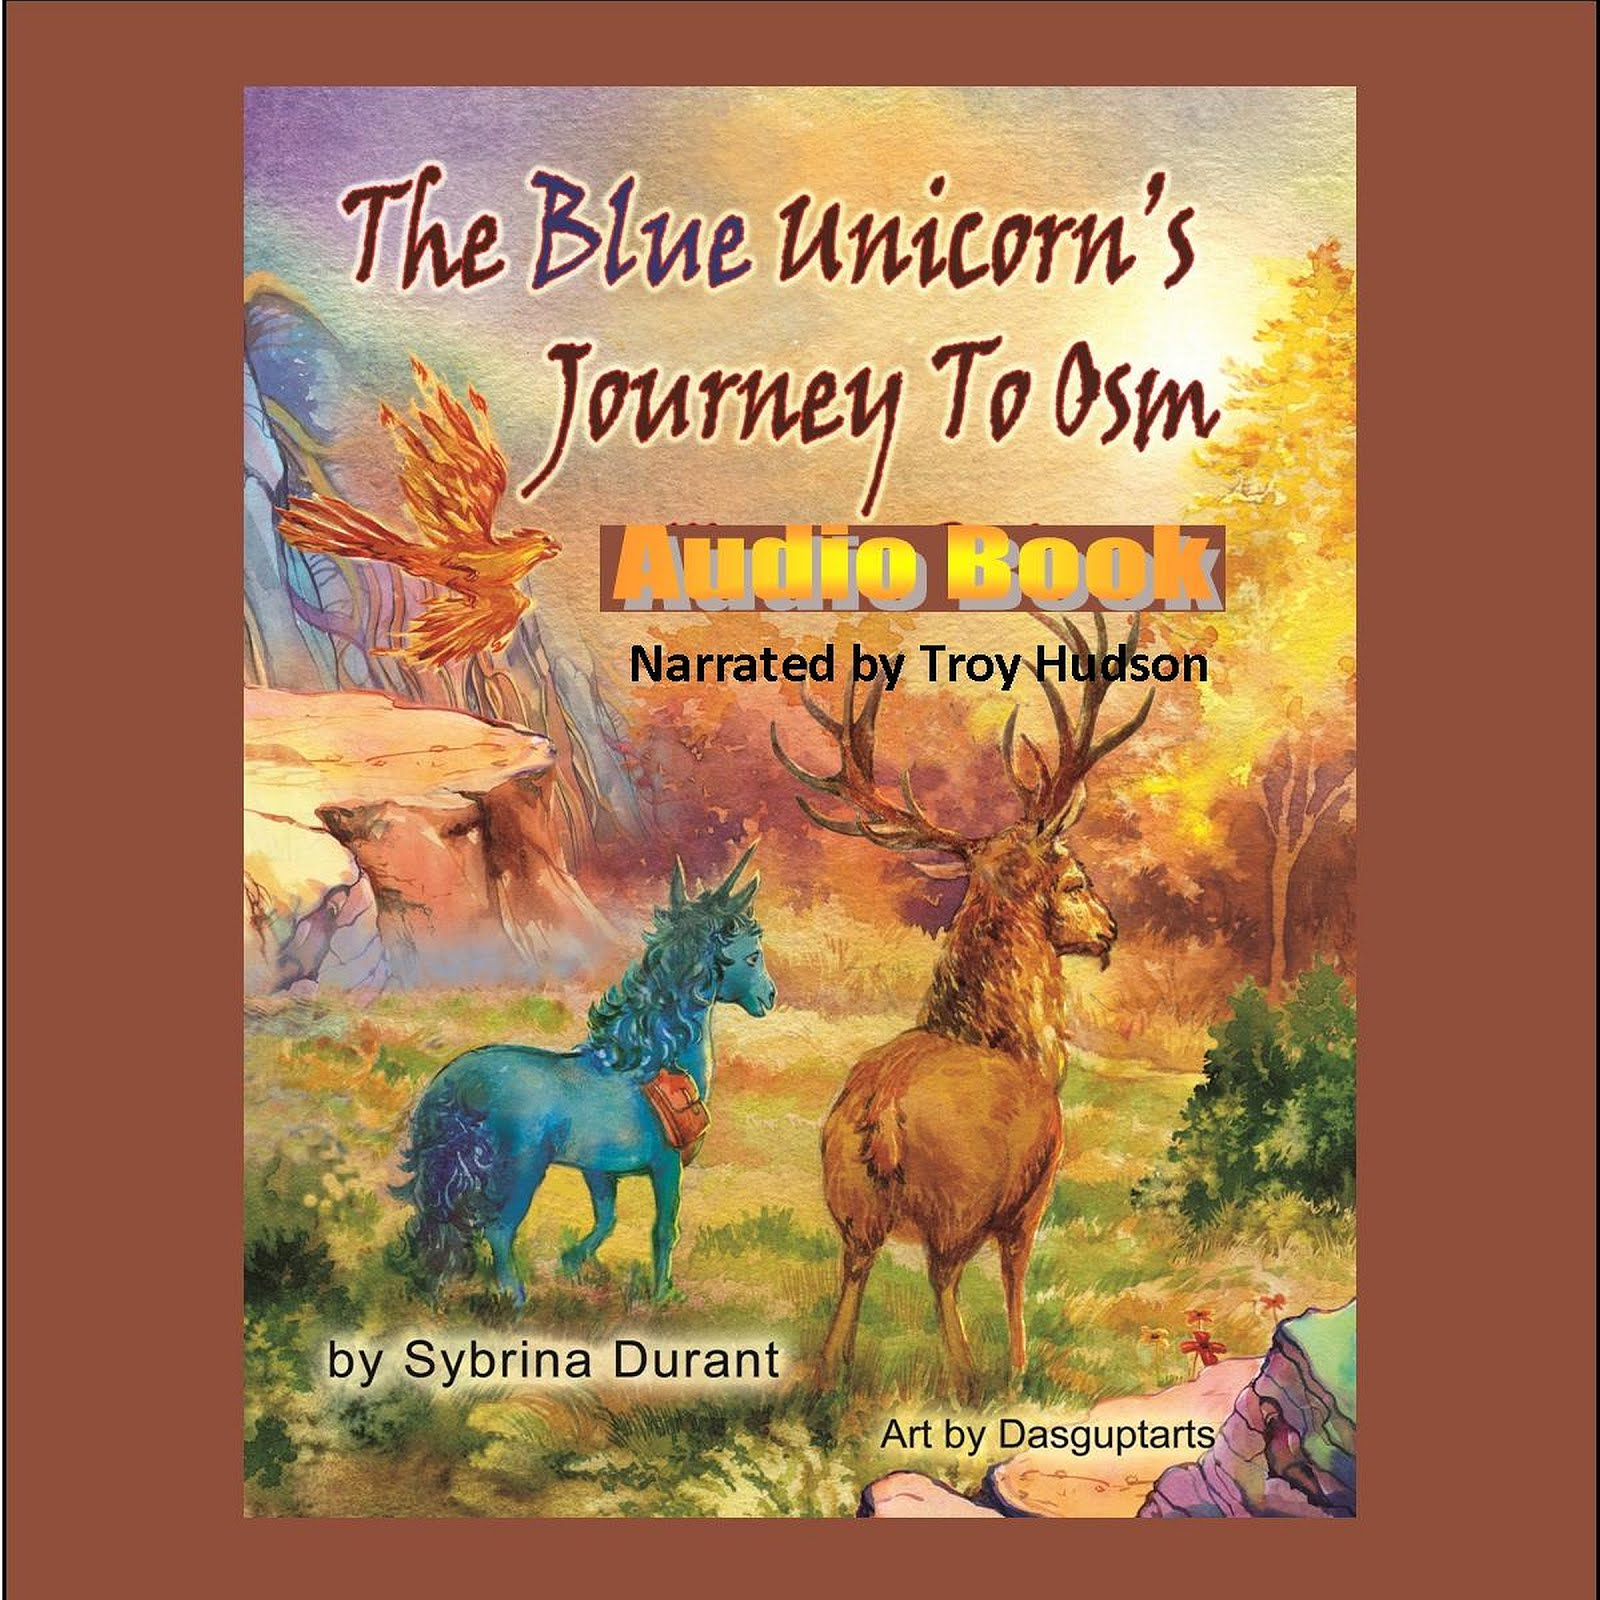 Audio Book - The Blue Unicorn's Journey To Osm